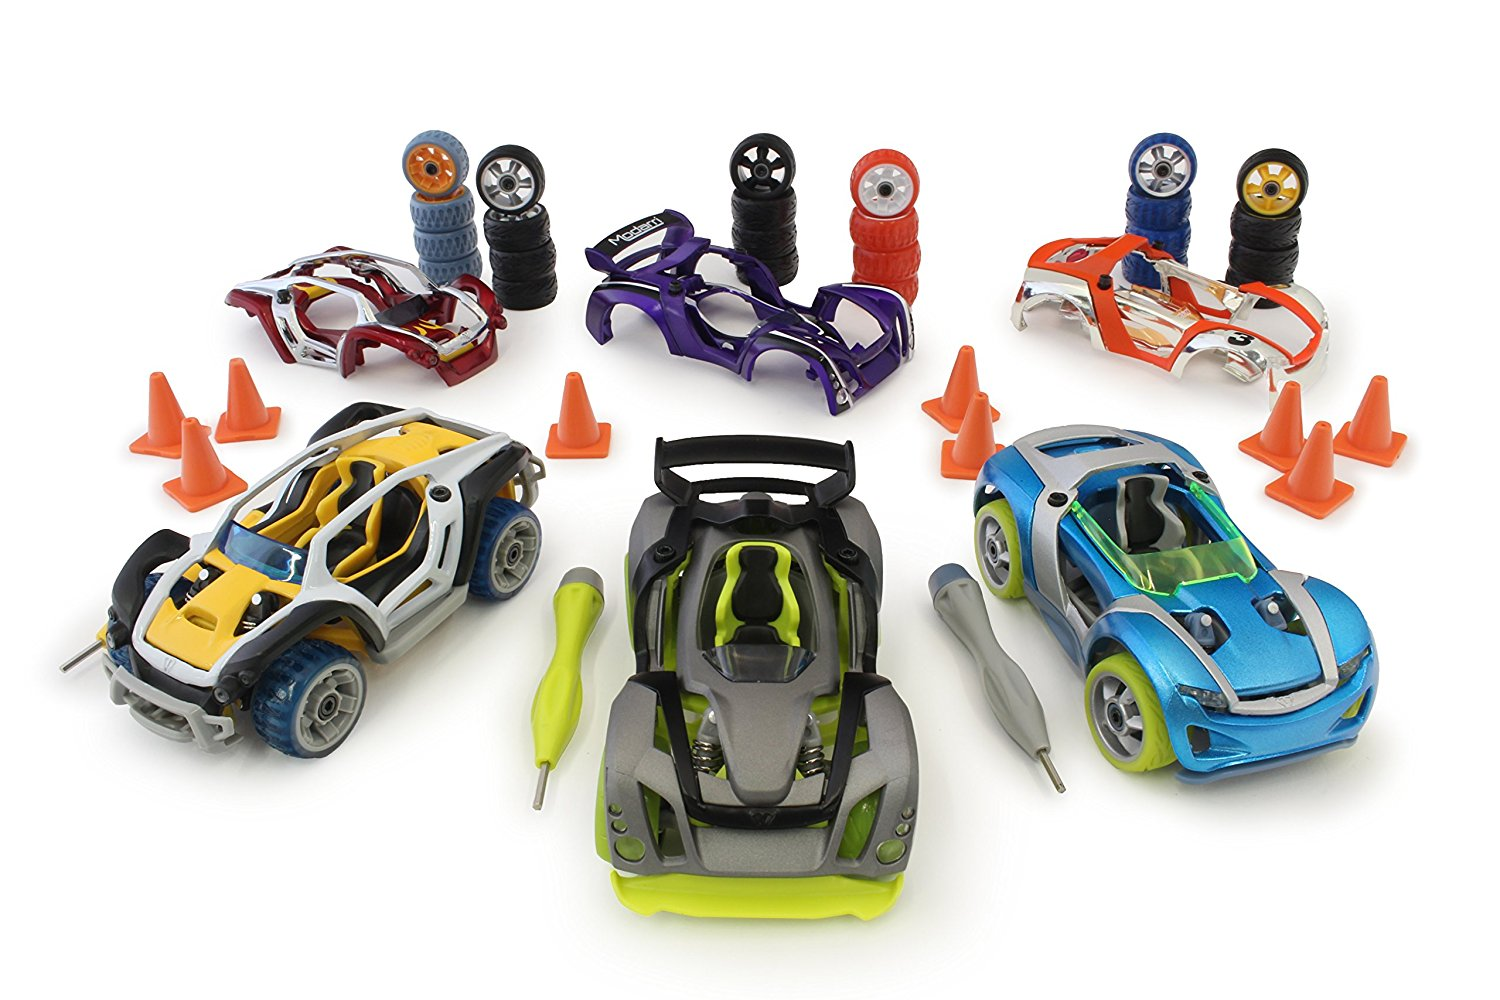 Modarri 3 Pack Bundle Car Set (S1, X1, T1) – Ultimate Toy Car: Fully Customizable – Mix and Match For Thousands of Designs – Real Steering and Suspension – Educational Construction Toy For Kids